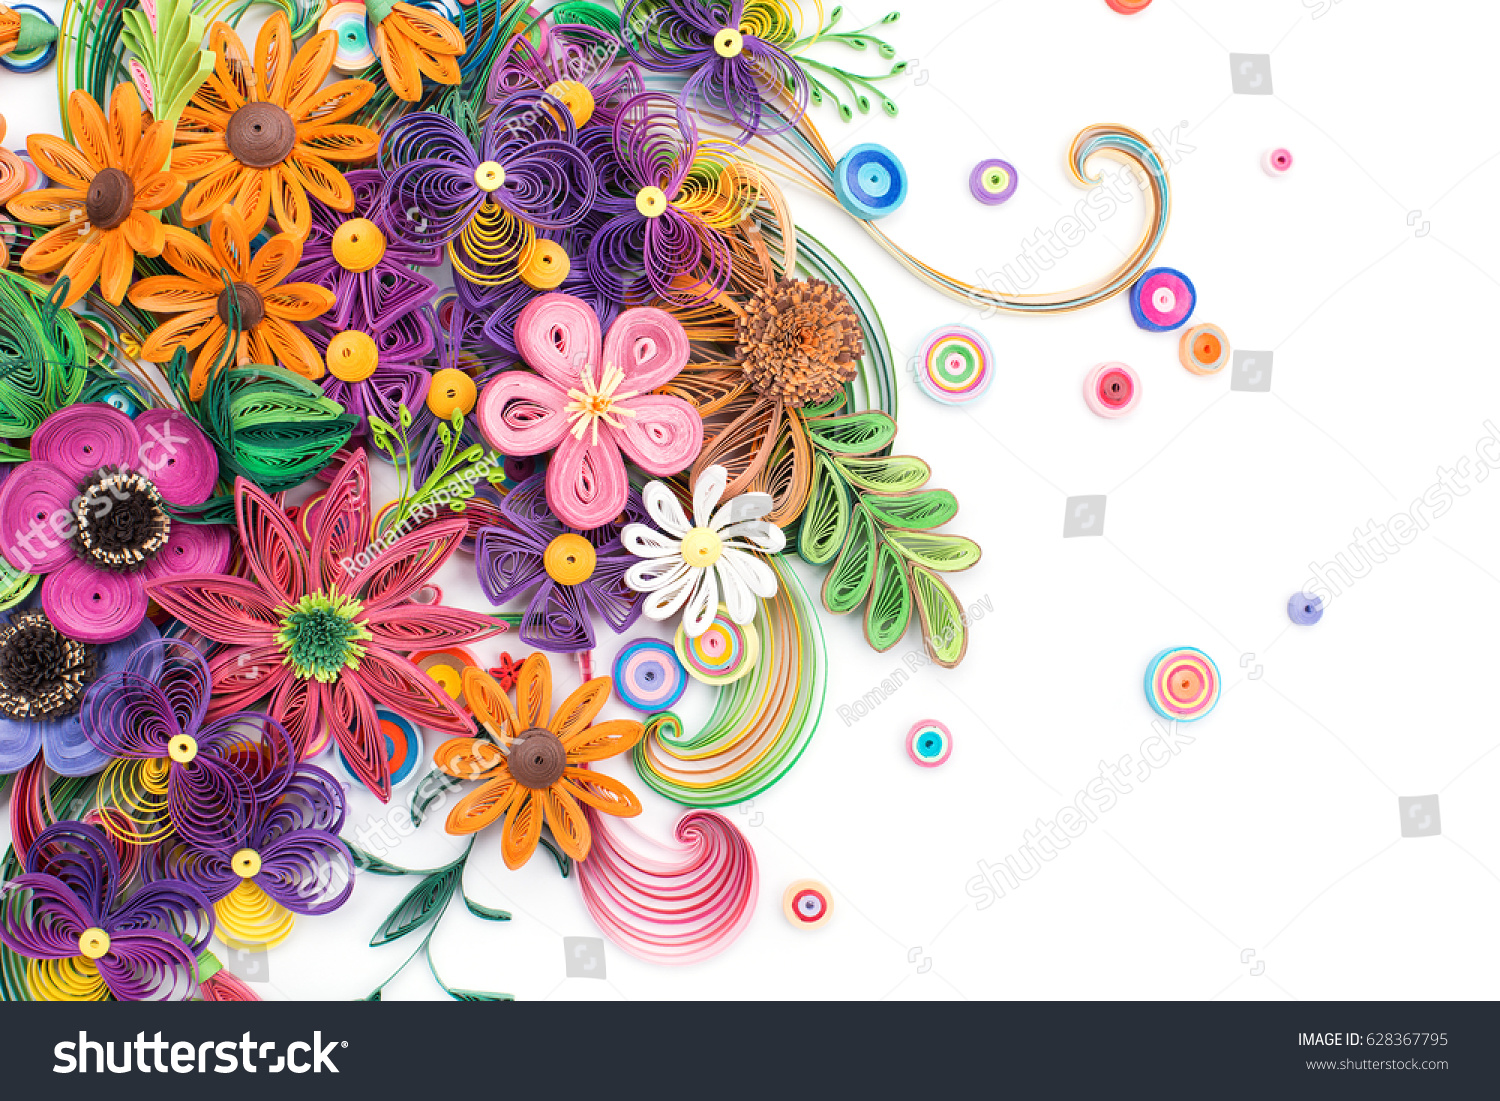 Beautiful Flowers Made Quilling Art Stock Photo Edit Now 628367795